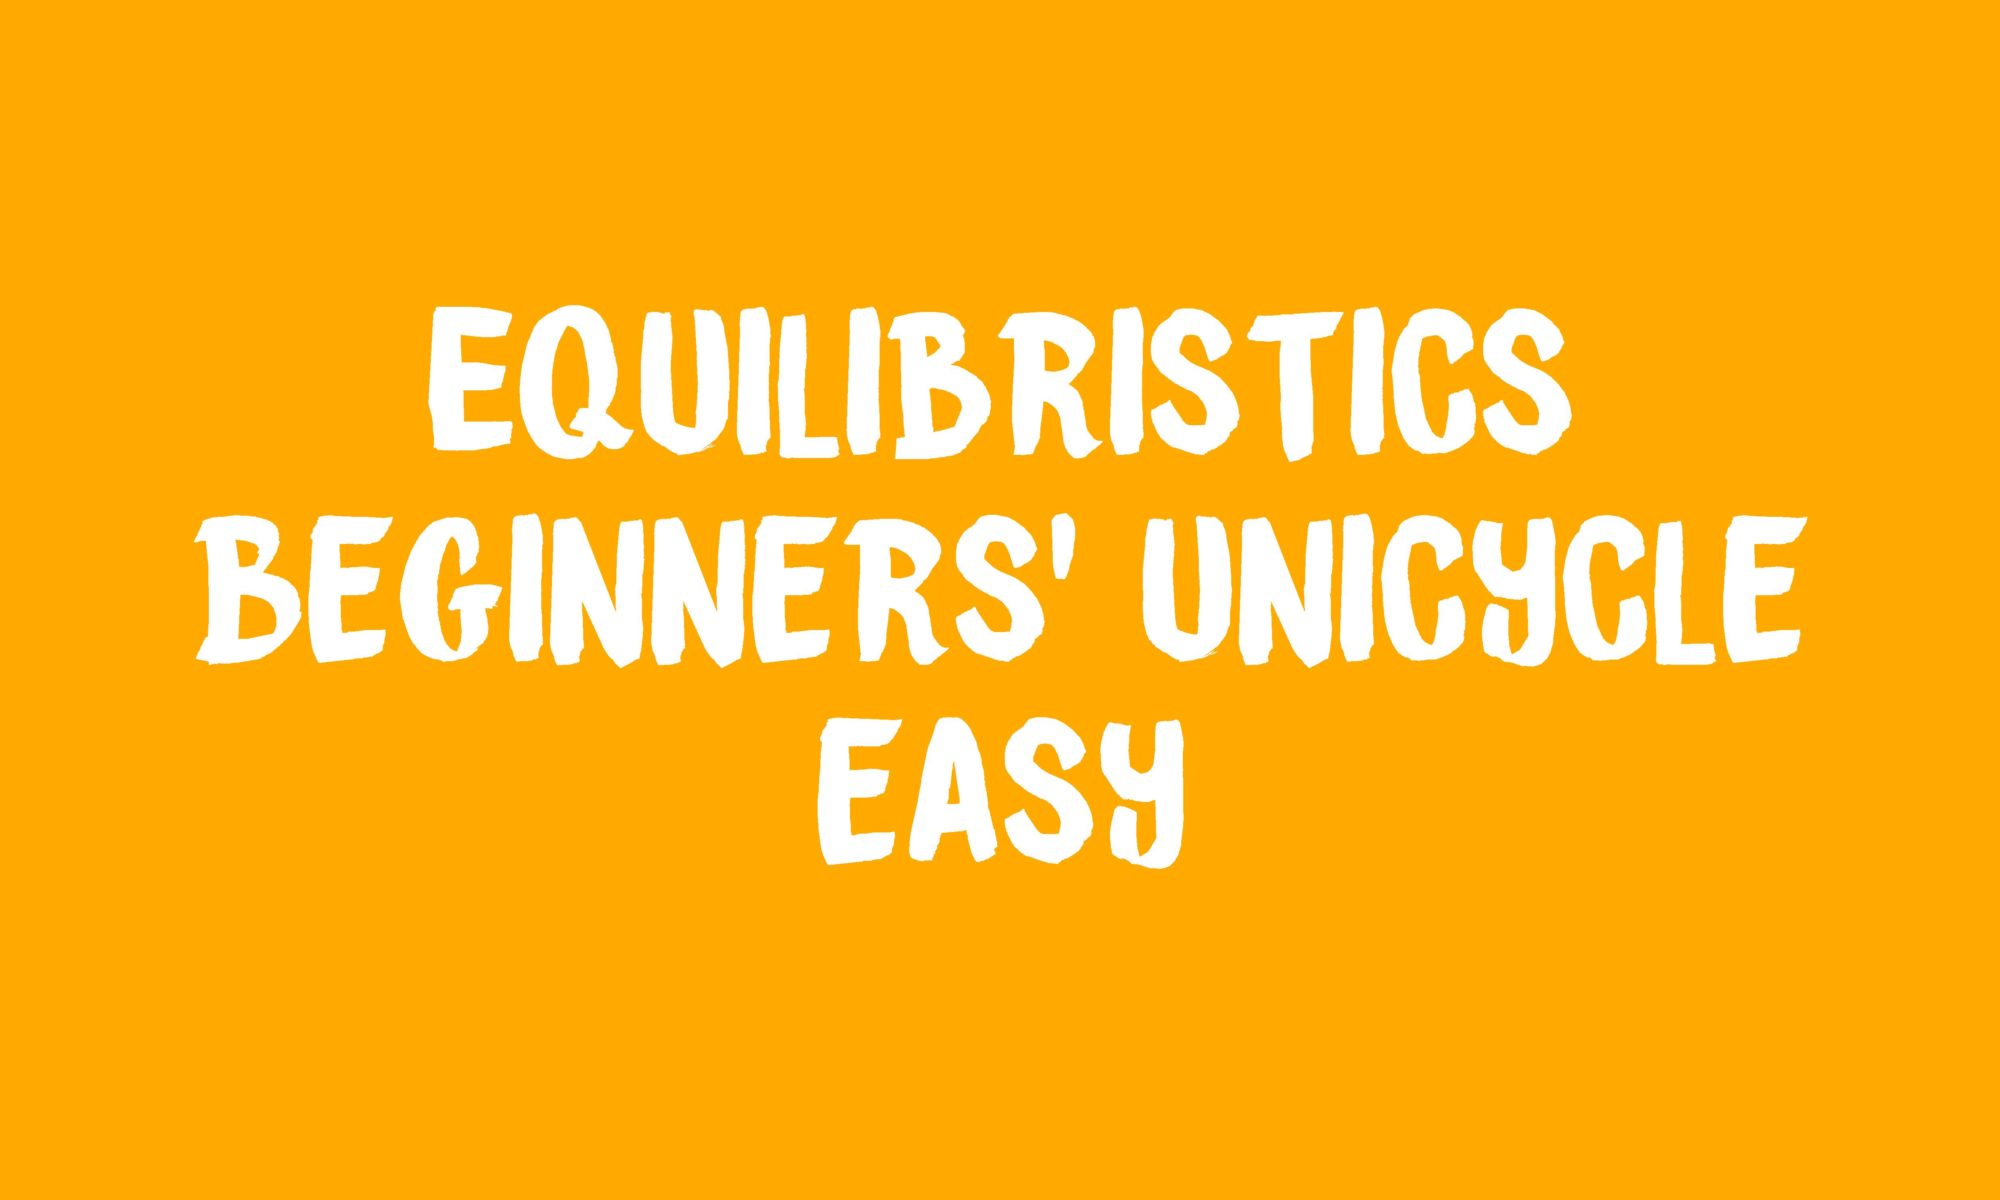 Beginners' unicycle banner